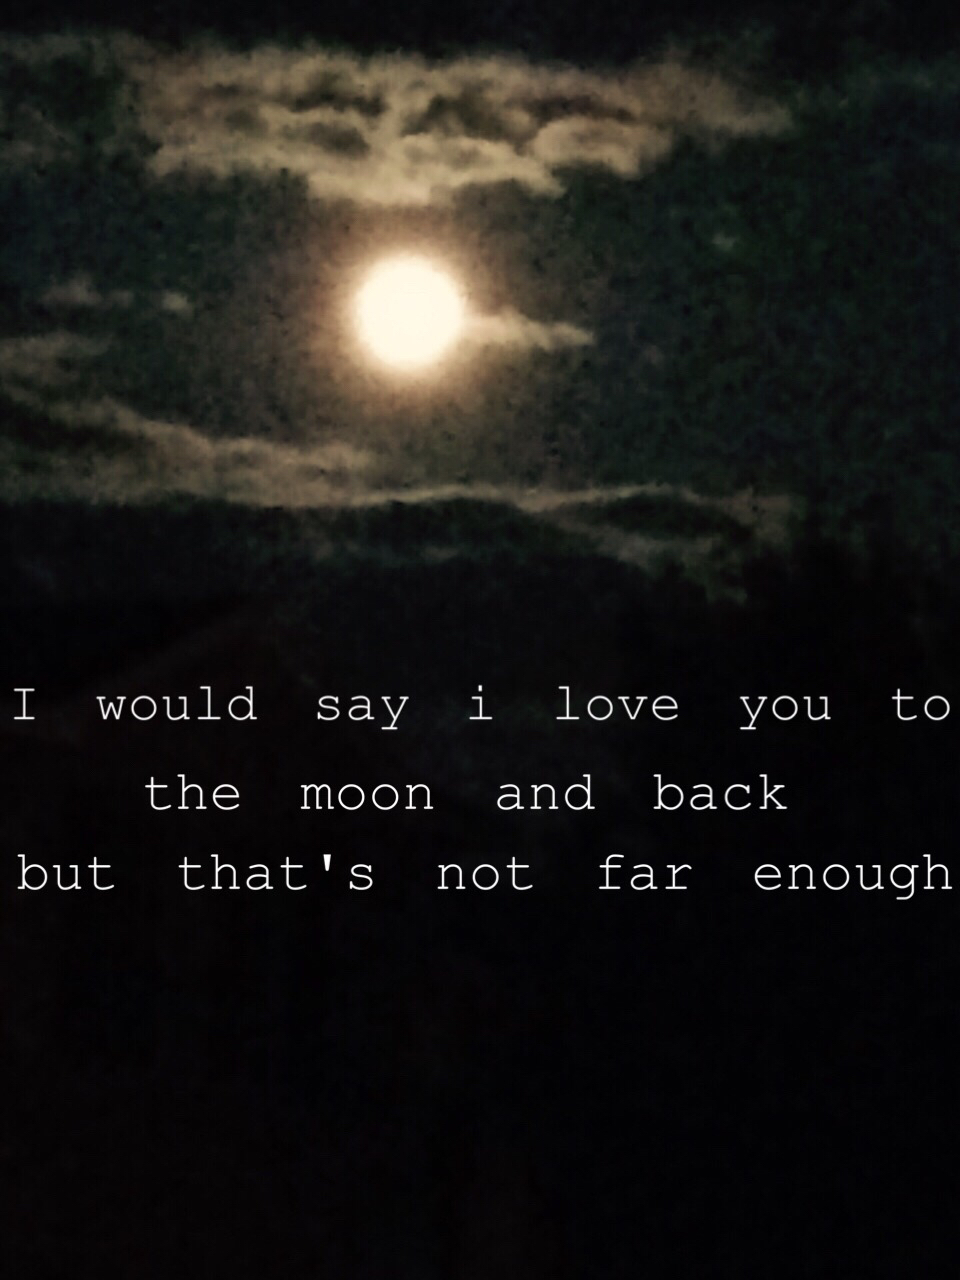 I would say I love you to the moon and back   but that's not